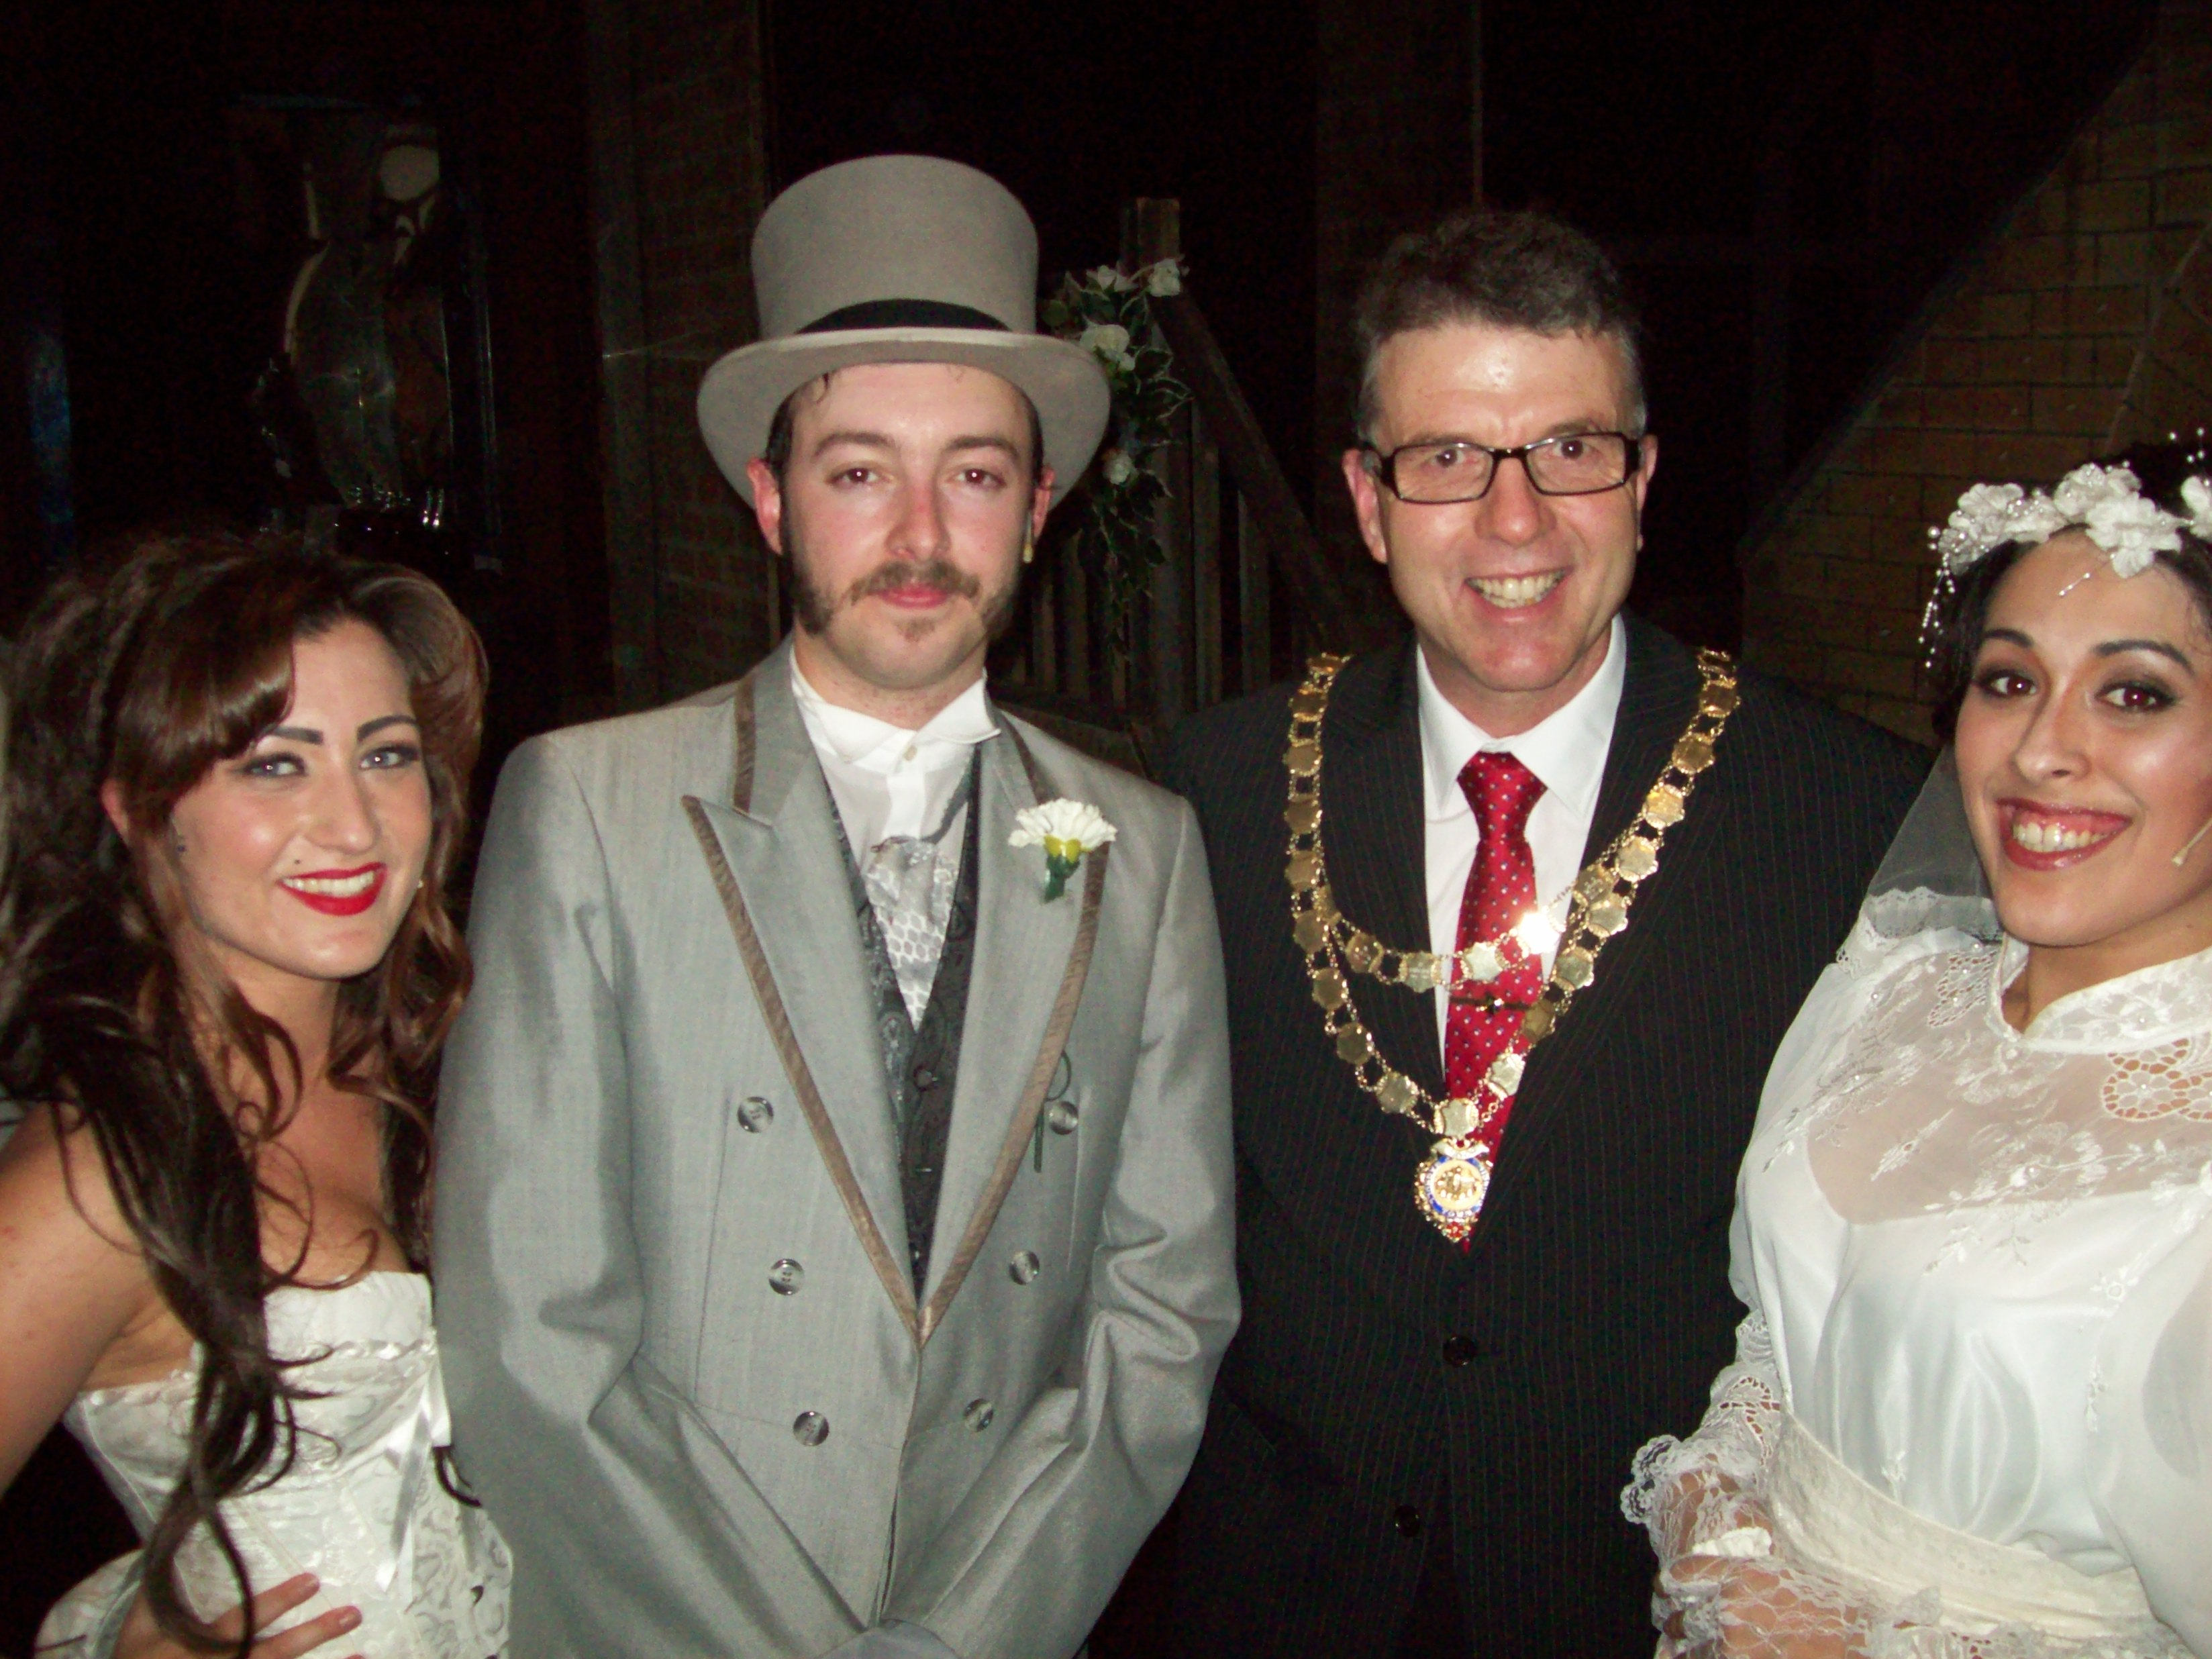 Mayor of Maghull Cllr Steve Kermode with Maghull Muscial Theatre Company cast members Peter Brennan who played Jekyll and Hyde, Kelli Bond who played Lucy Harris and Jessica D'Silva who played Emma Carew.